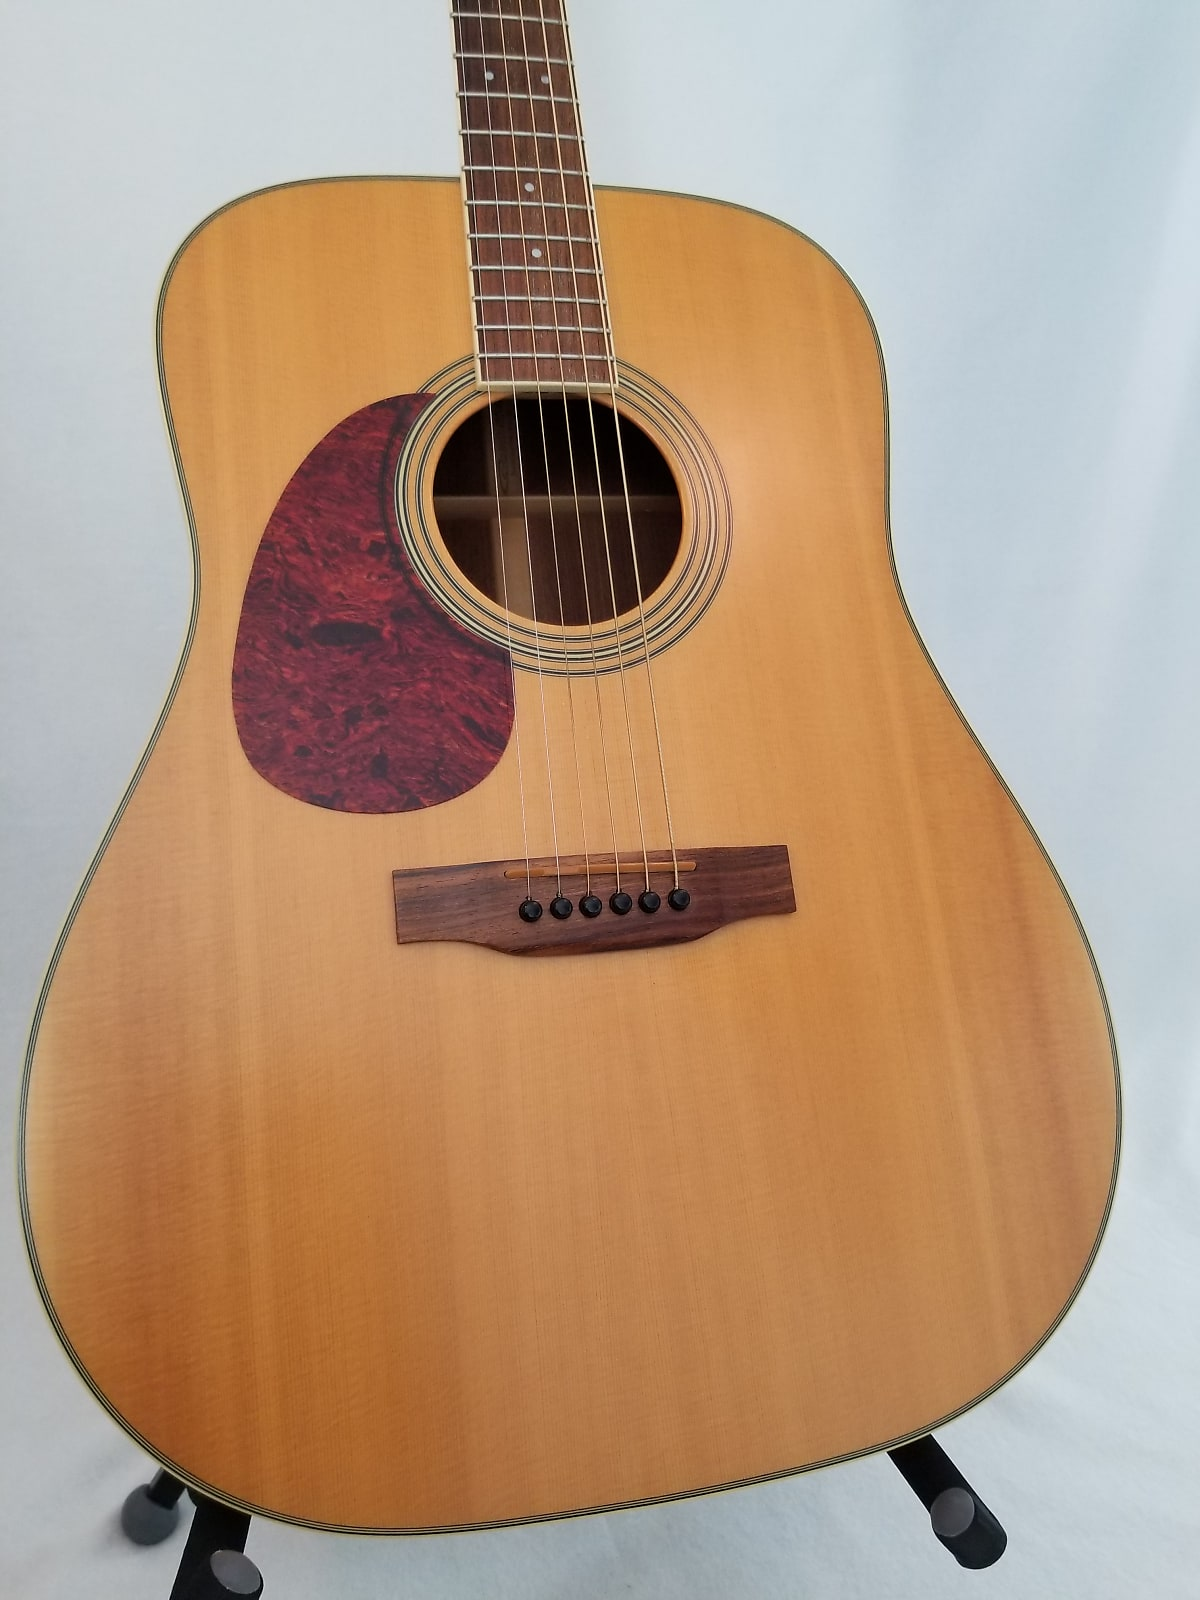 Carvin Acoustic Model C250 2005 Natural Satin Lefty With Hard Shell Case